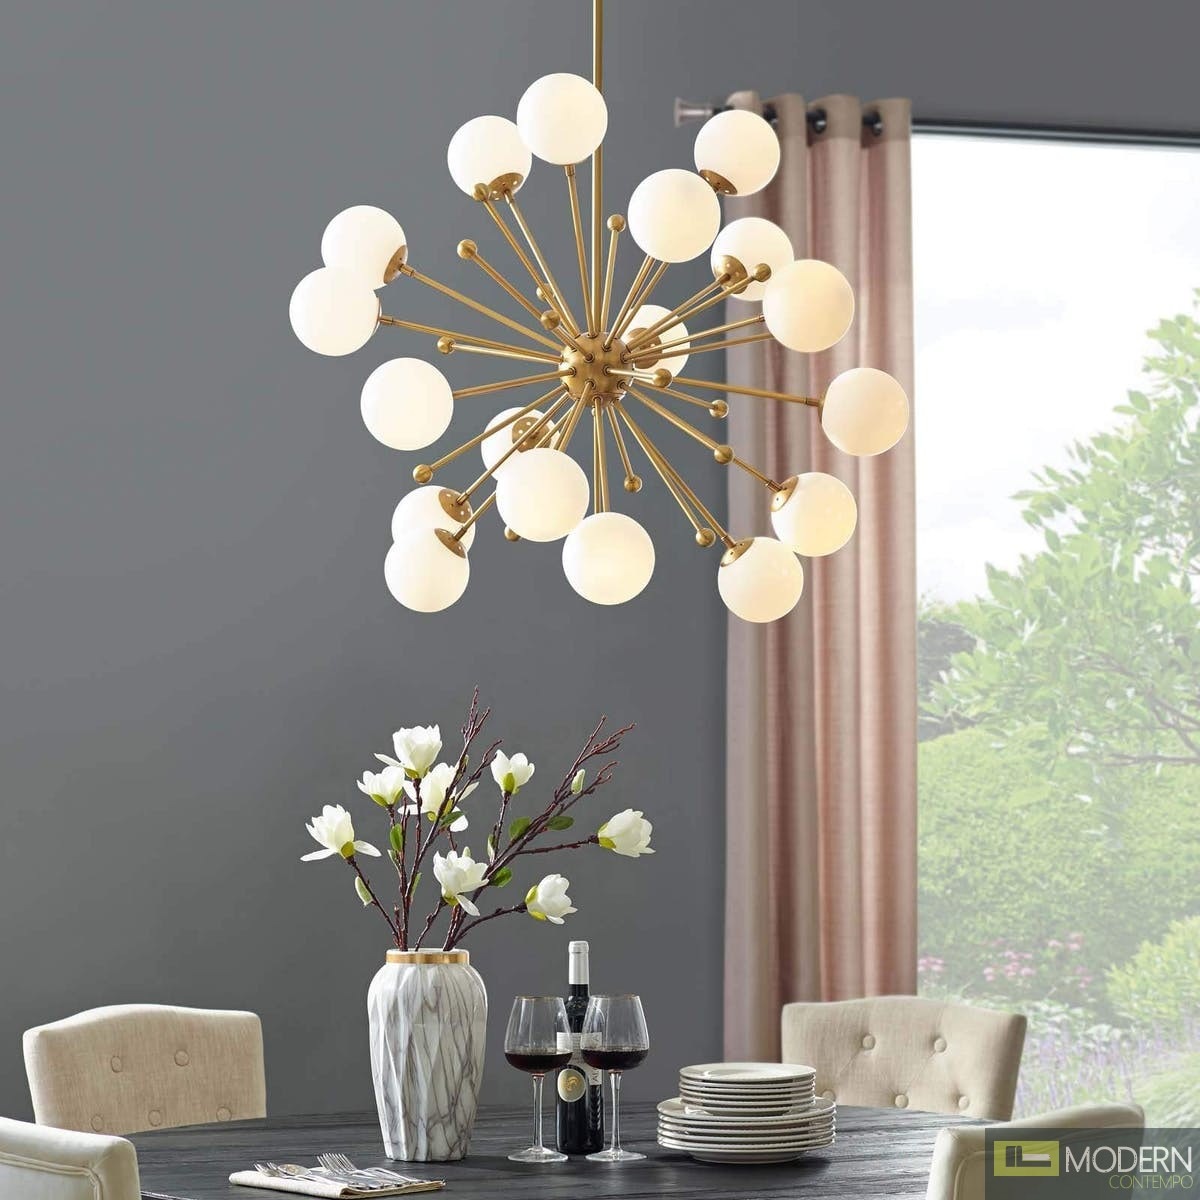 Amberly White Glass and Brass Ceiling Light Pendant Chandelier